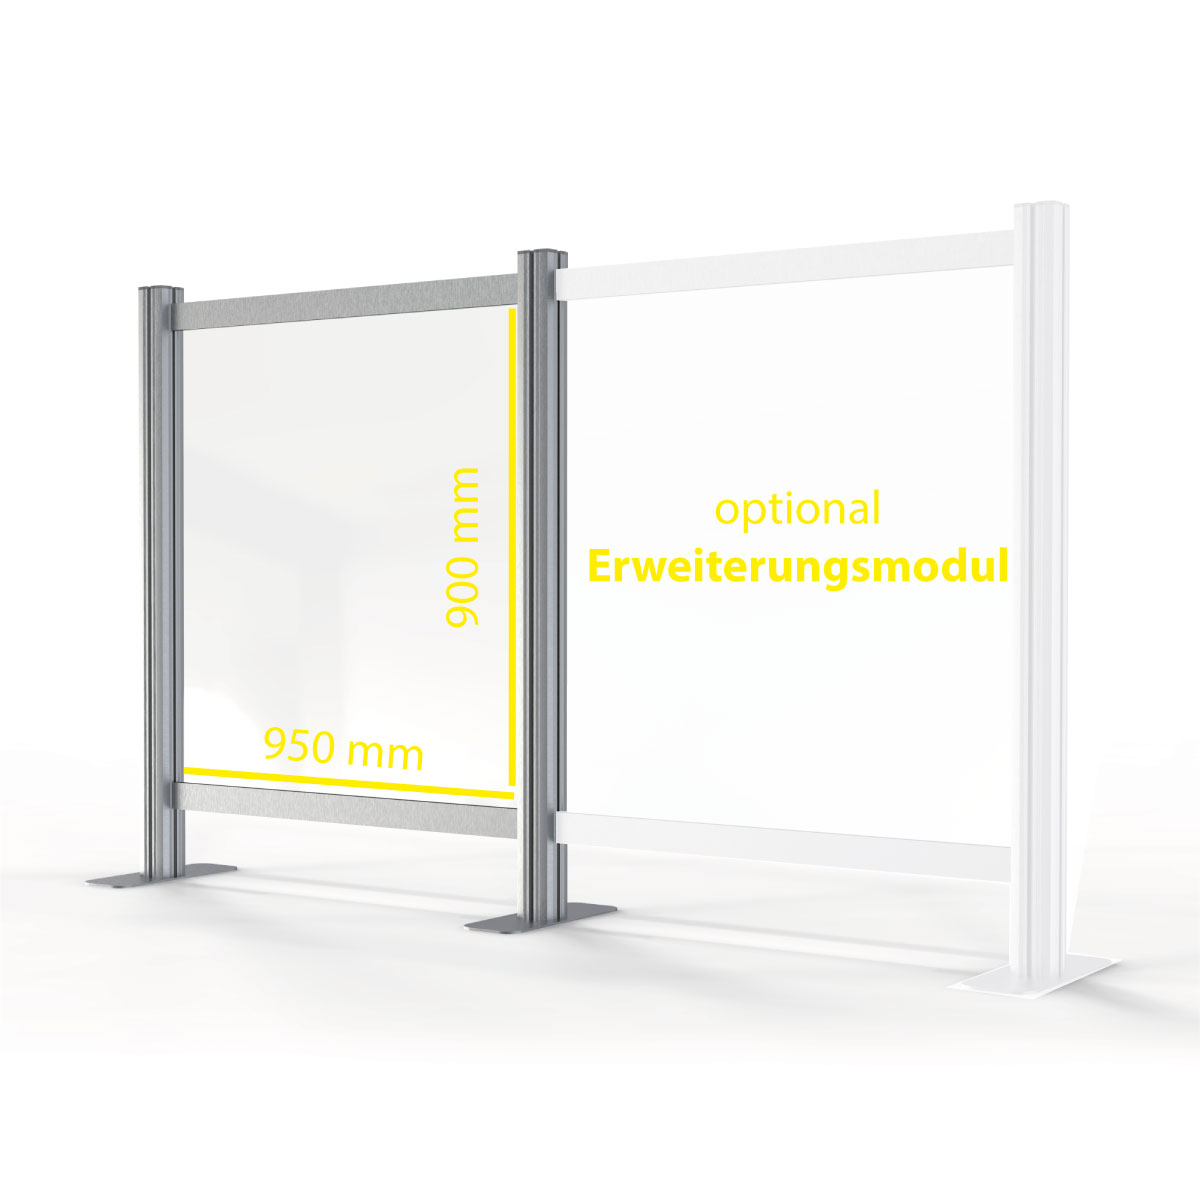 Sneeze guard made of acrylic glass with aluminum frame. Size L: 950 x 900 mm